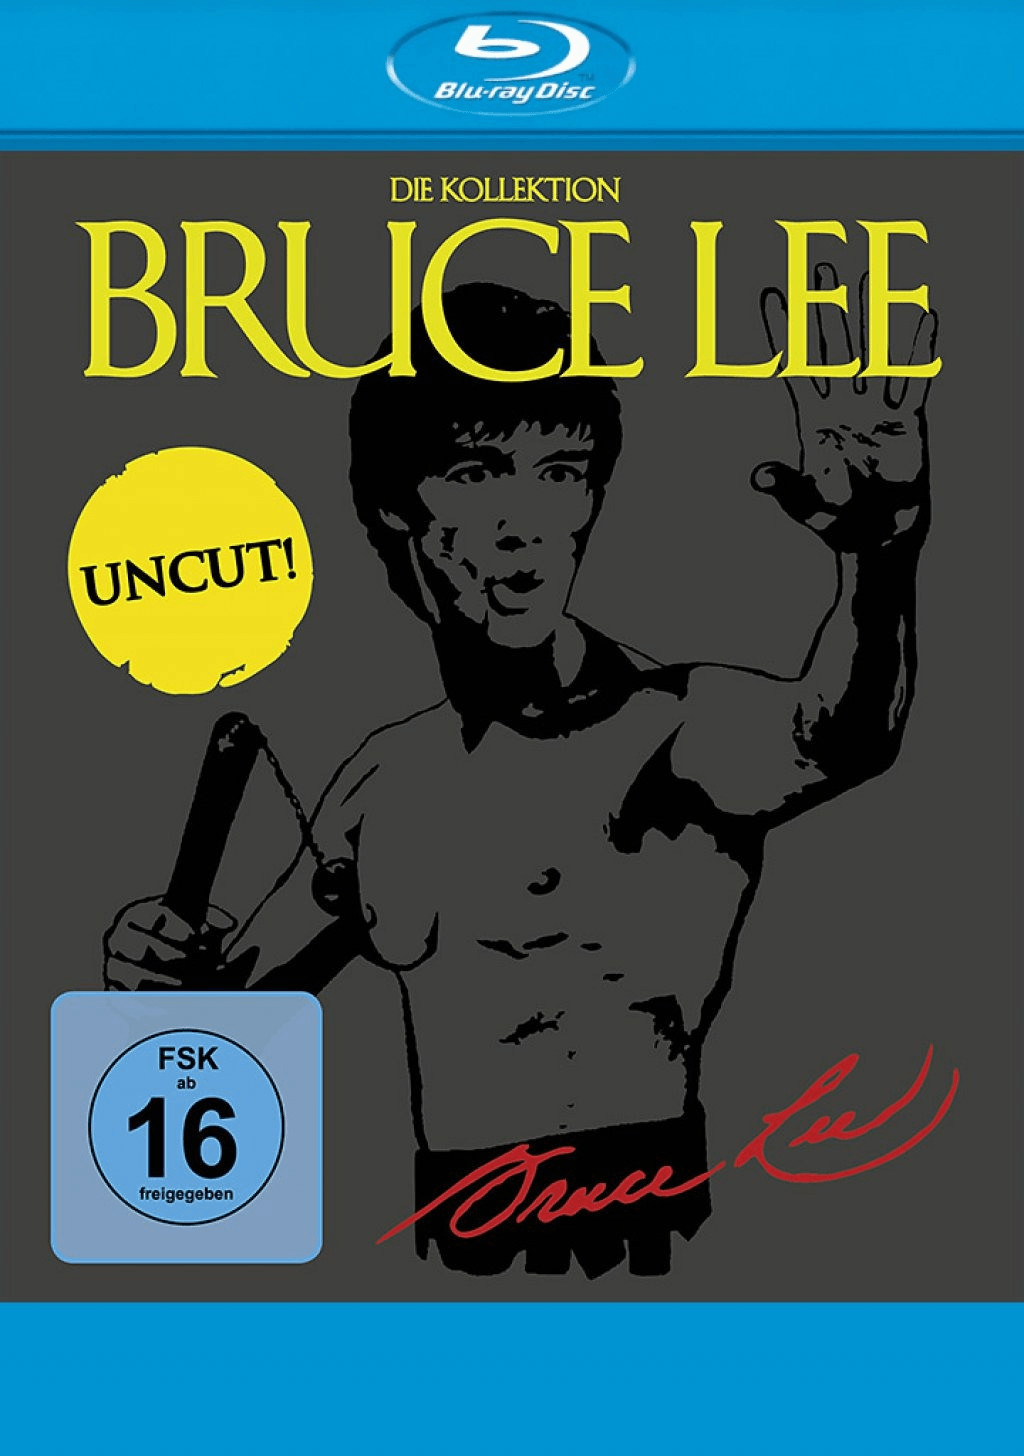 Bruce Lee - Die Kollektion - Uncut